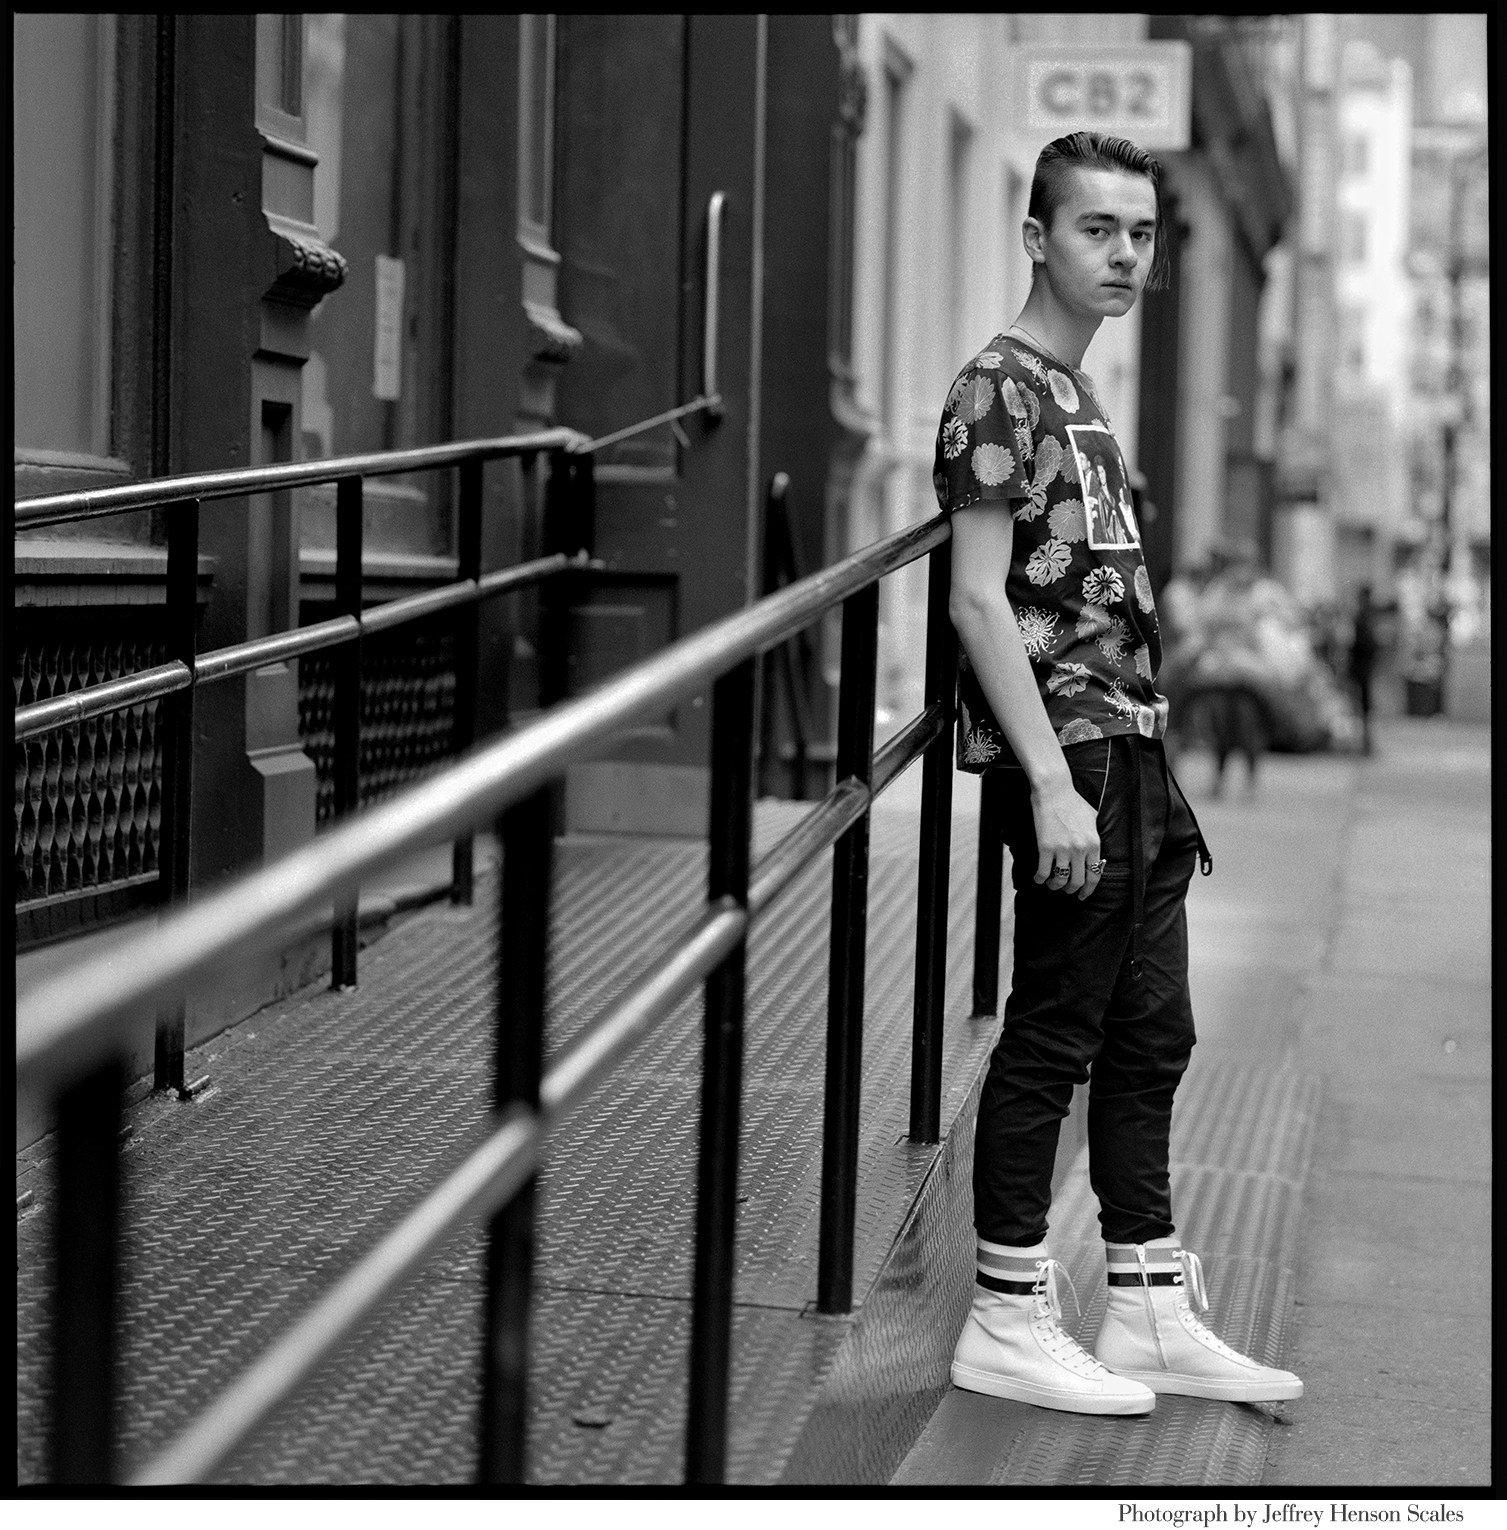 The Look _ New York Times_ Rebecca Pietri Stylist _ Casting _ Jeffery Henson Scale Photgrapher_Eve Lyon Editor_ New Geeks_Article_Nom Core- Youth Fashion_ Supreme_Palace_Vans_Street fashion _ Soho_ Teens_Christoph_ Shot .JPG